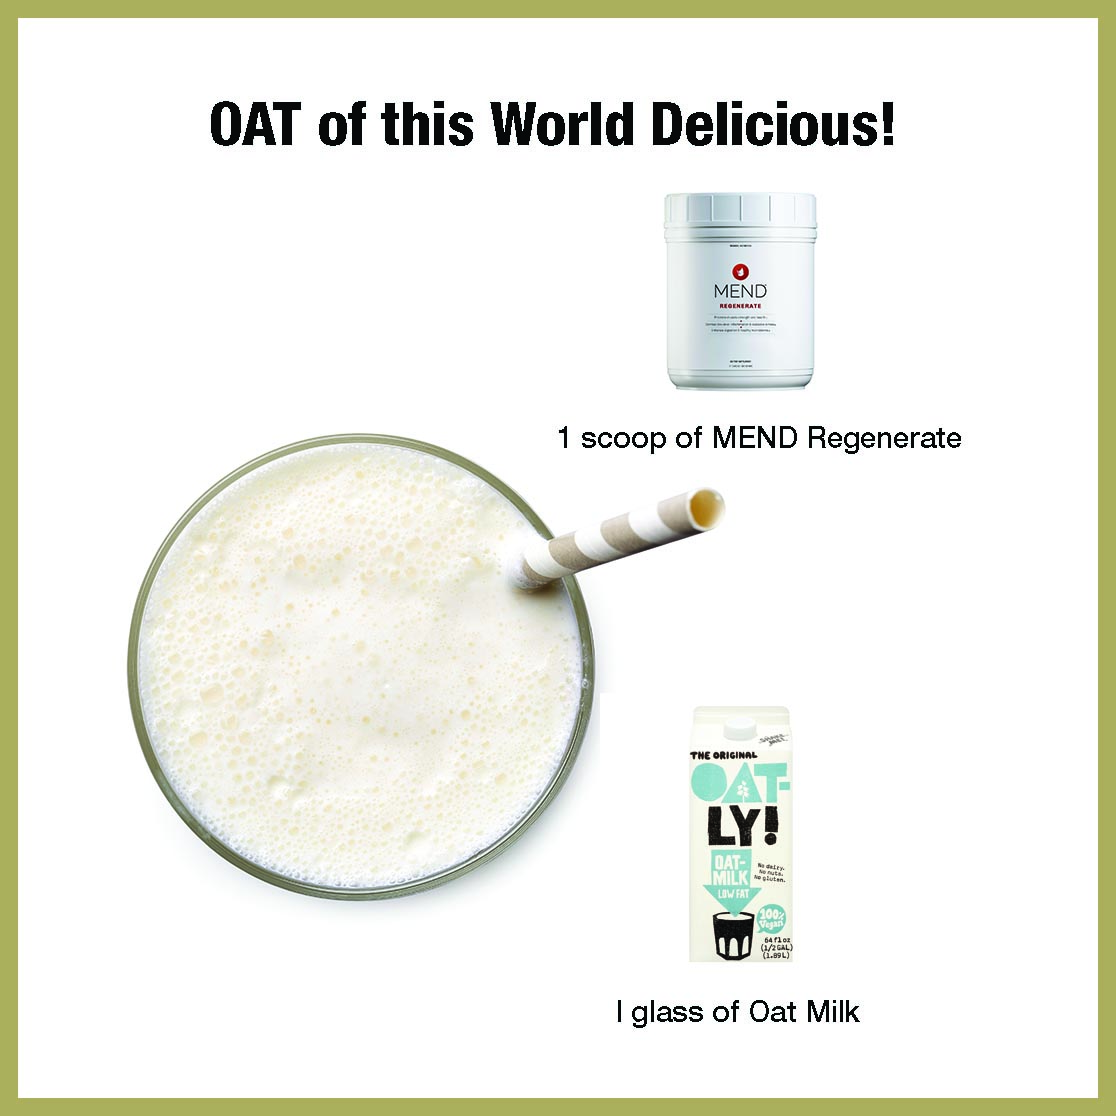 Oat of this World!